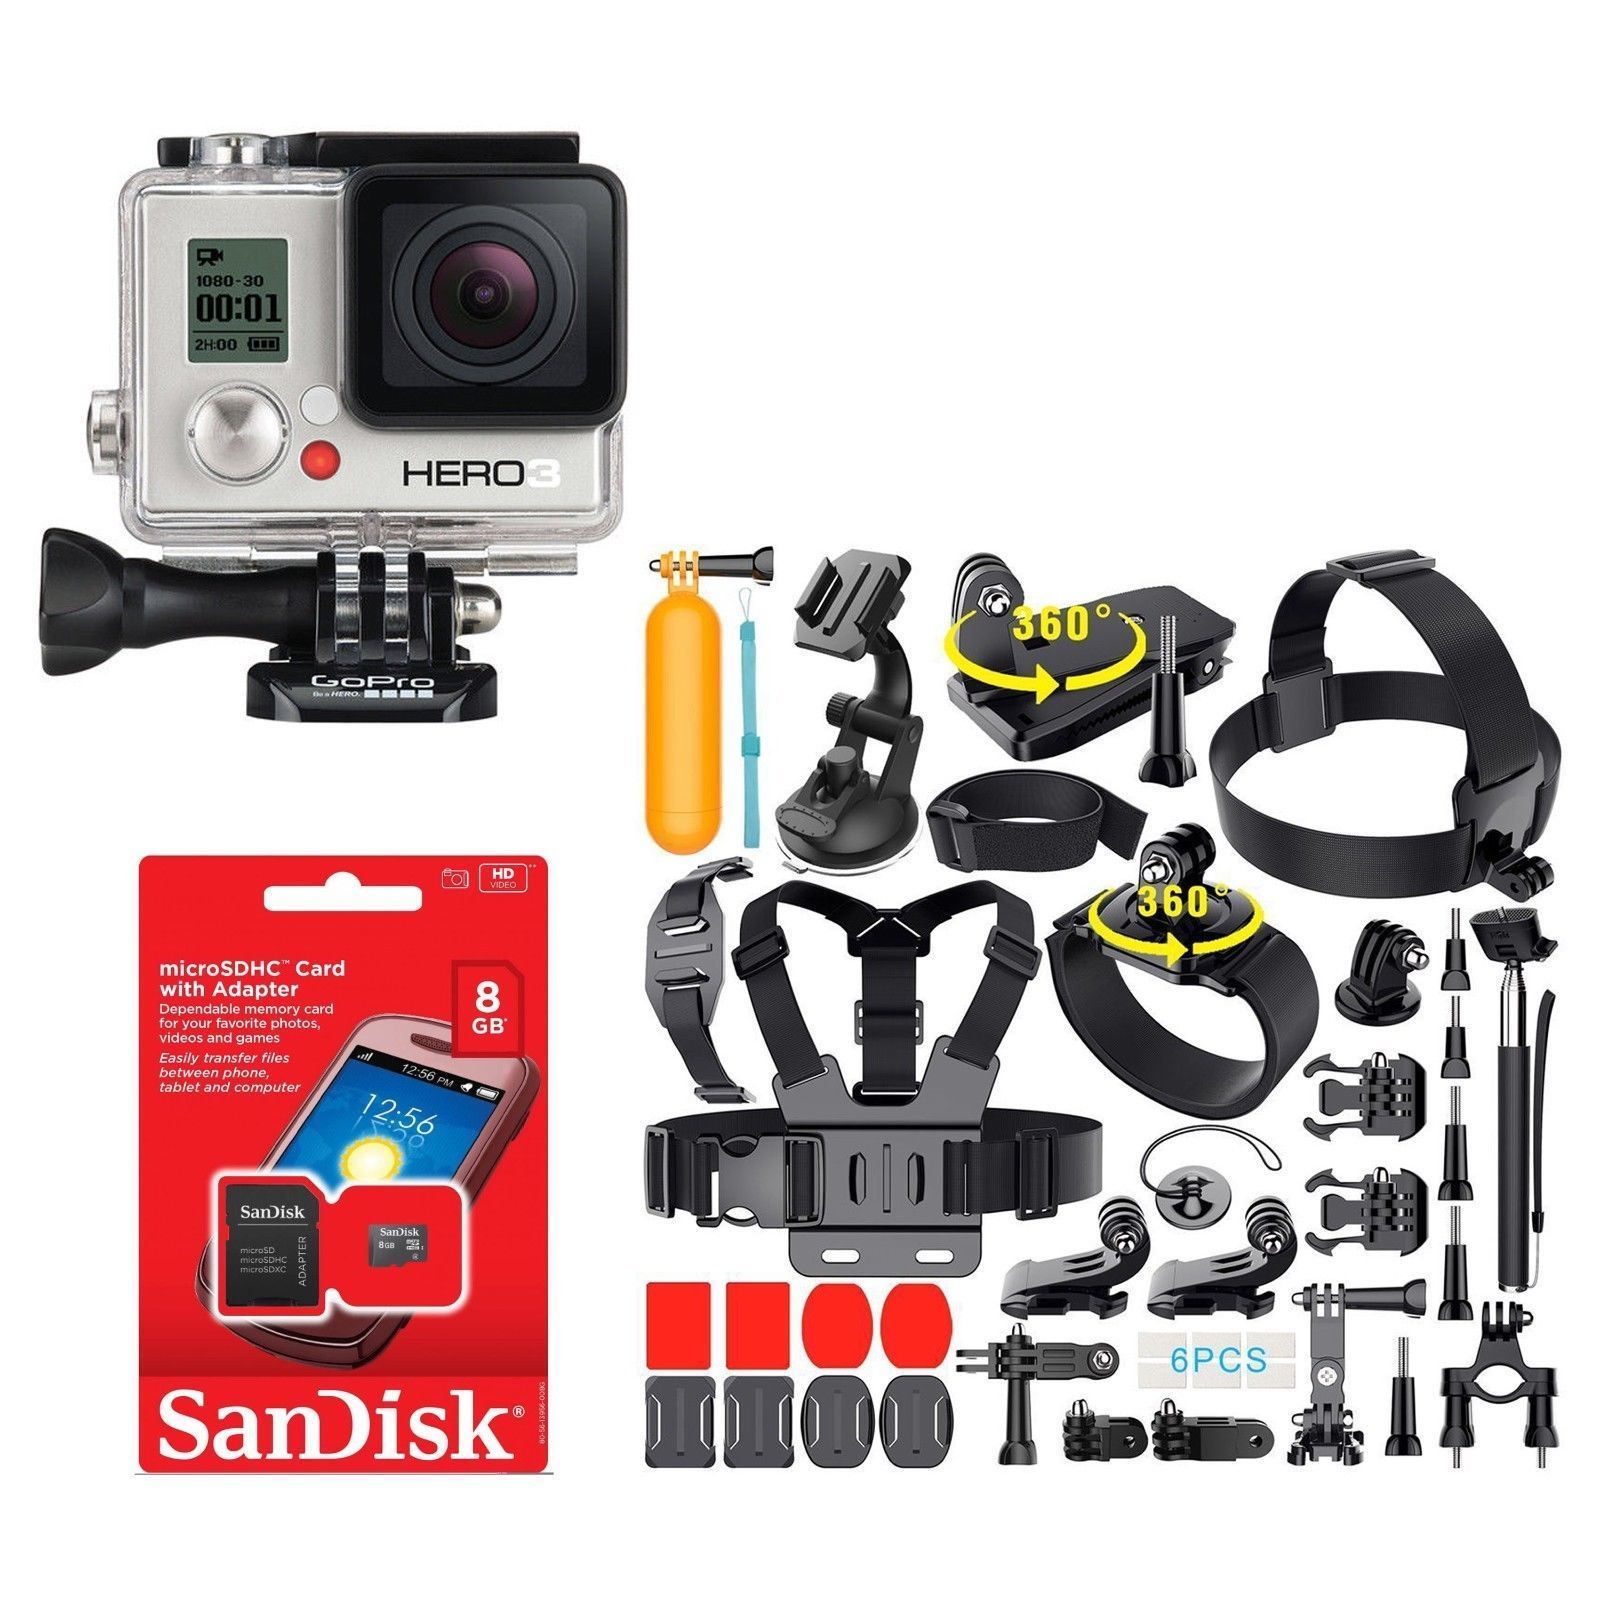 Refurbished GoPro HERO3 WHITE Edition Action Camera CHDHE-301 With lots of 35+ Accessories!